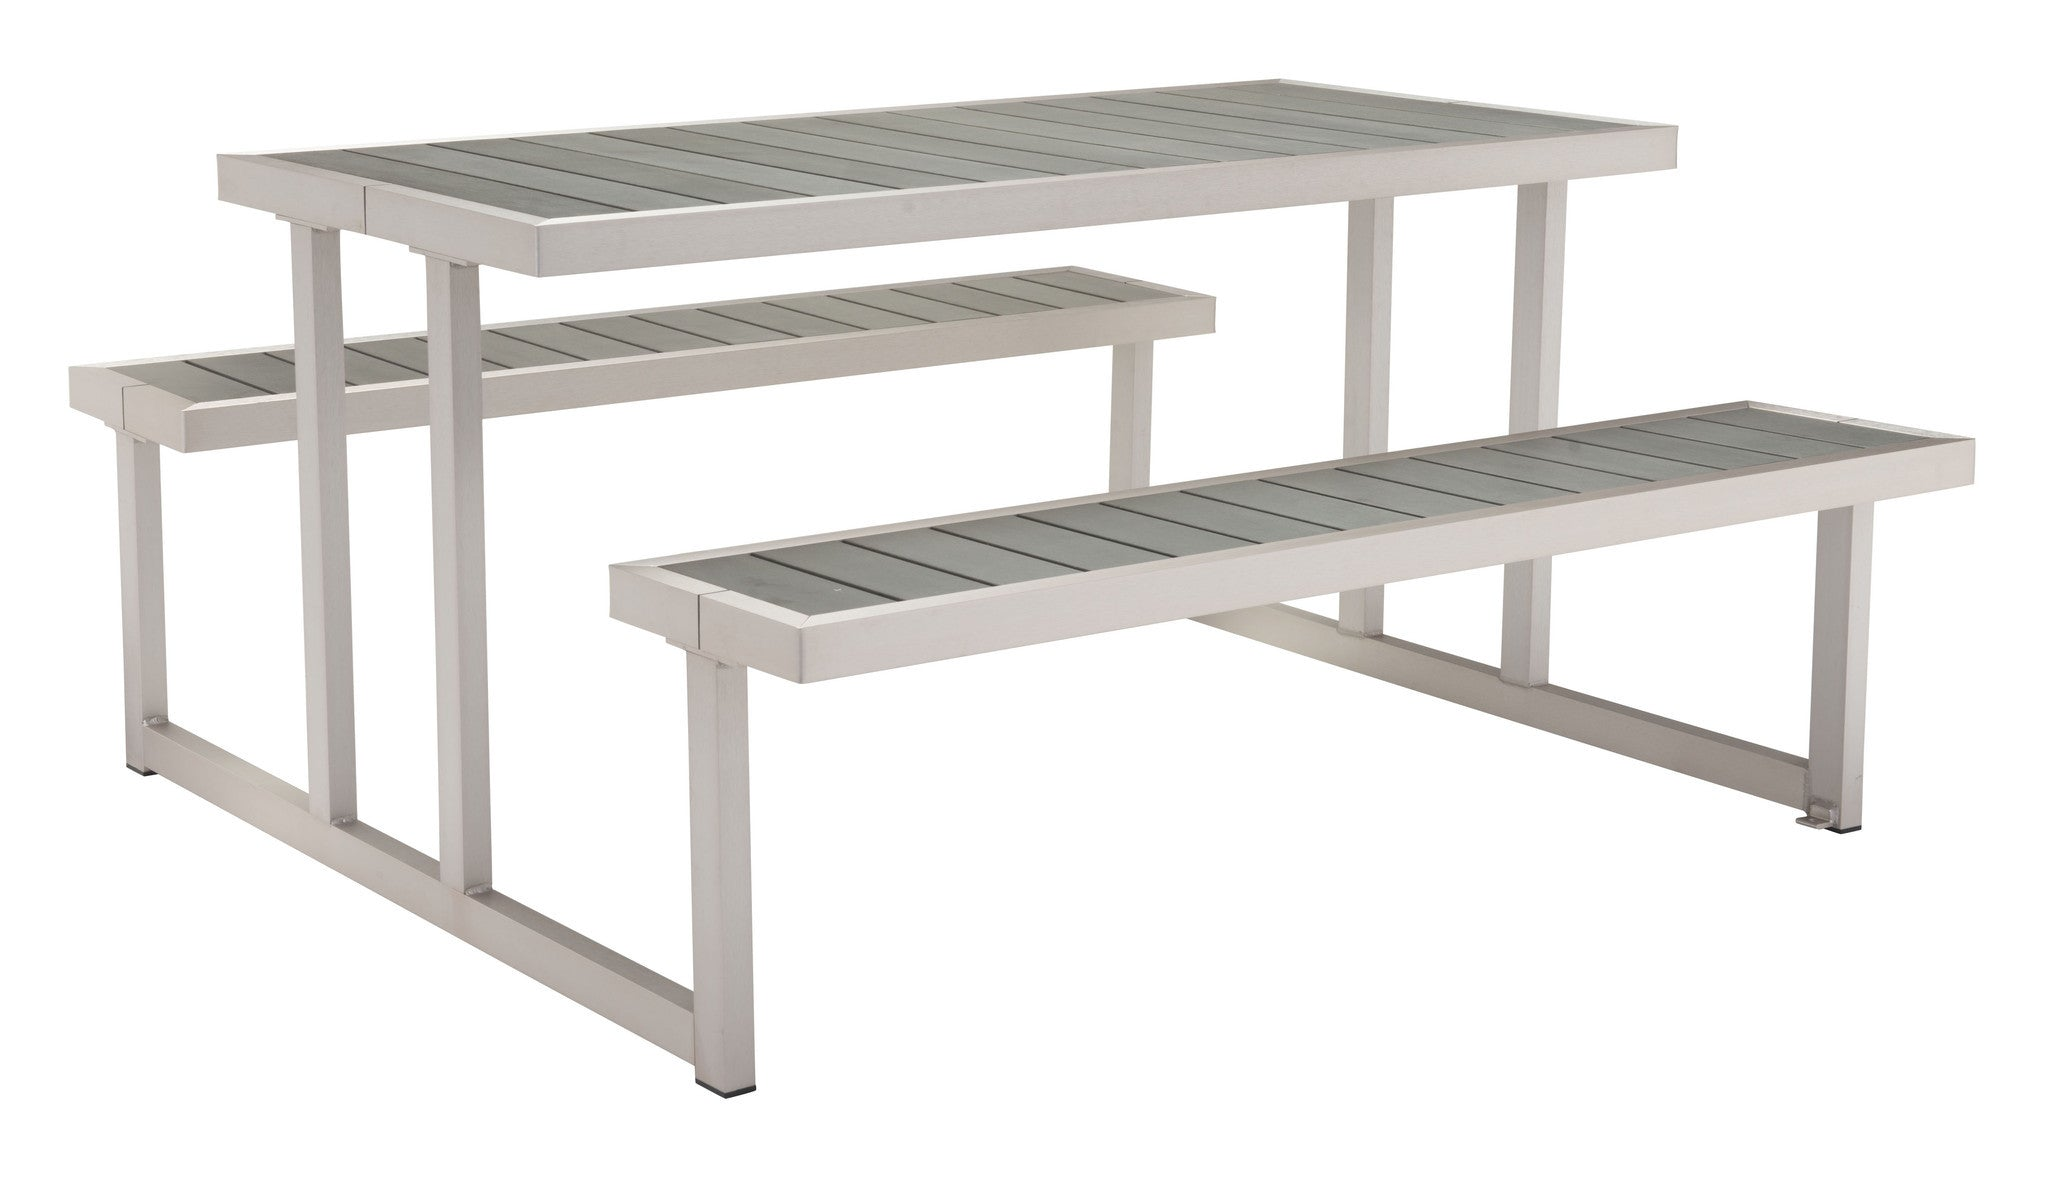 Cuomo Picnic Table & Benches with Poly Wood Tops on Galvanized Aluminu